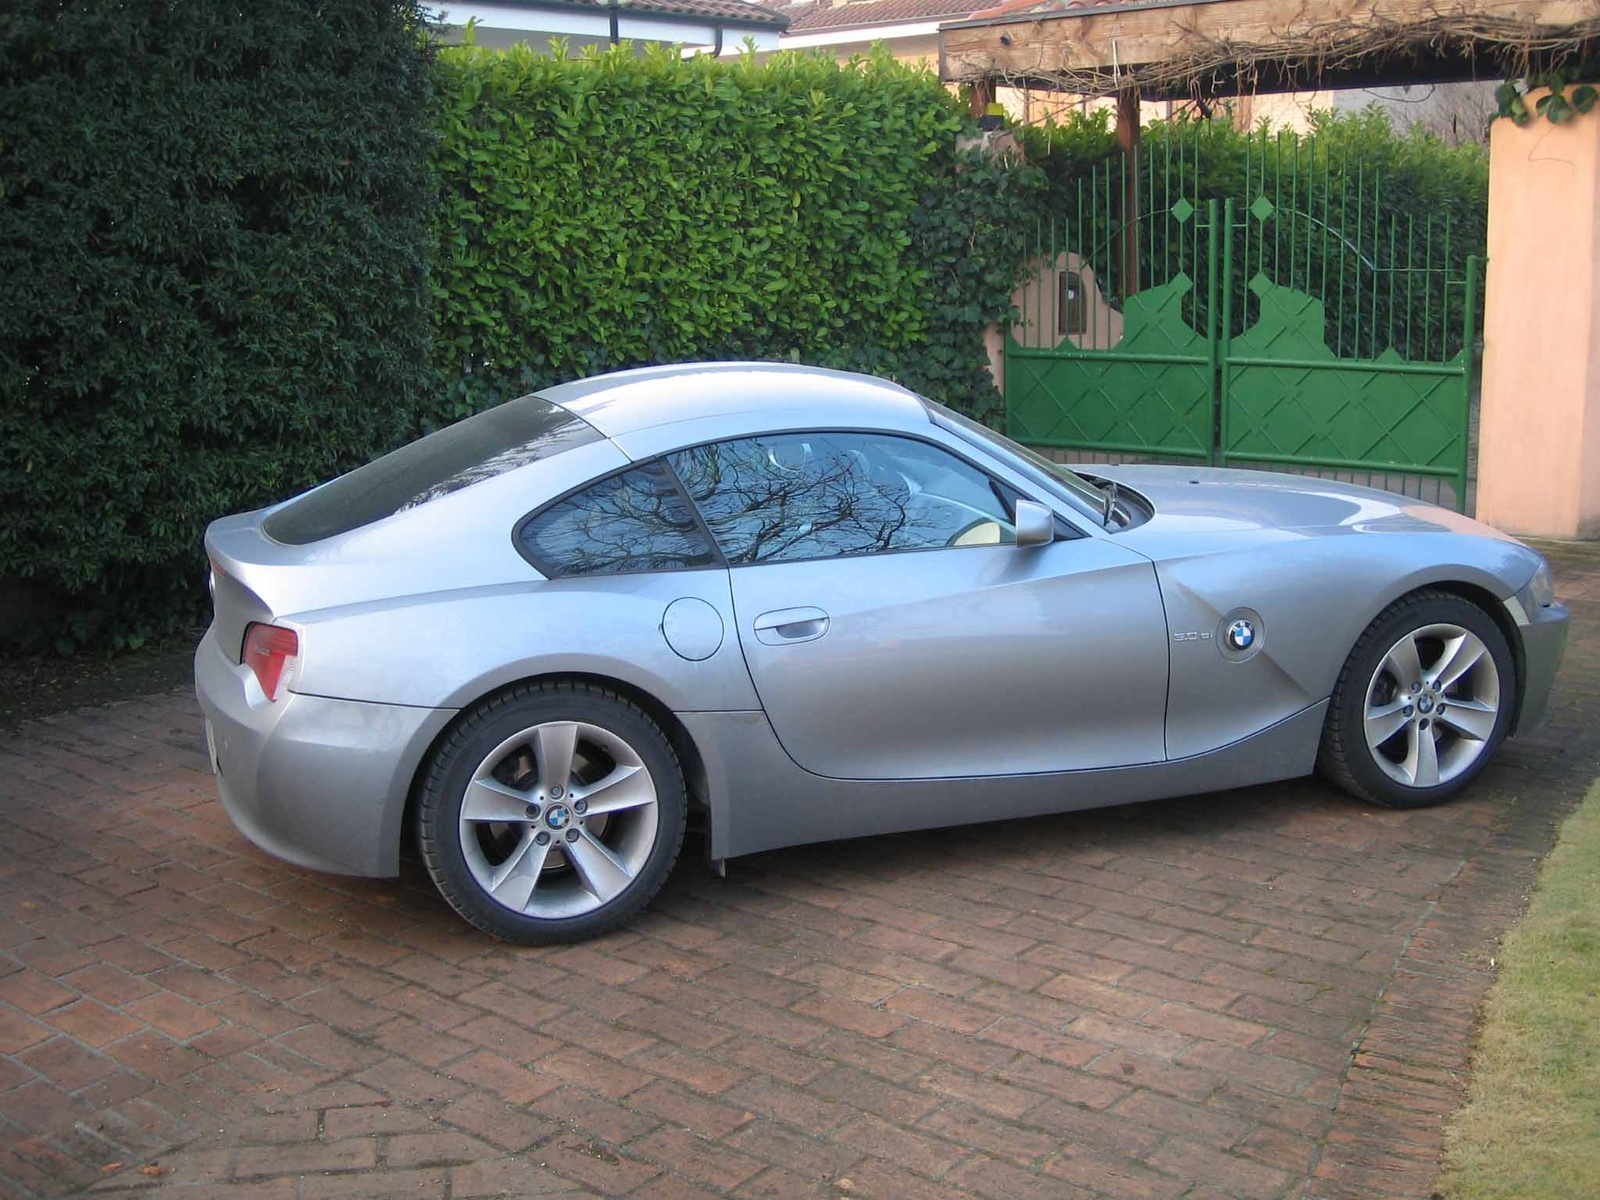 bmw z4 coup technical details history photos on better parts ltd. Black Bedroom Furniture Sets. Home Design Ideas